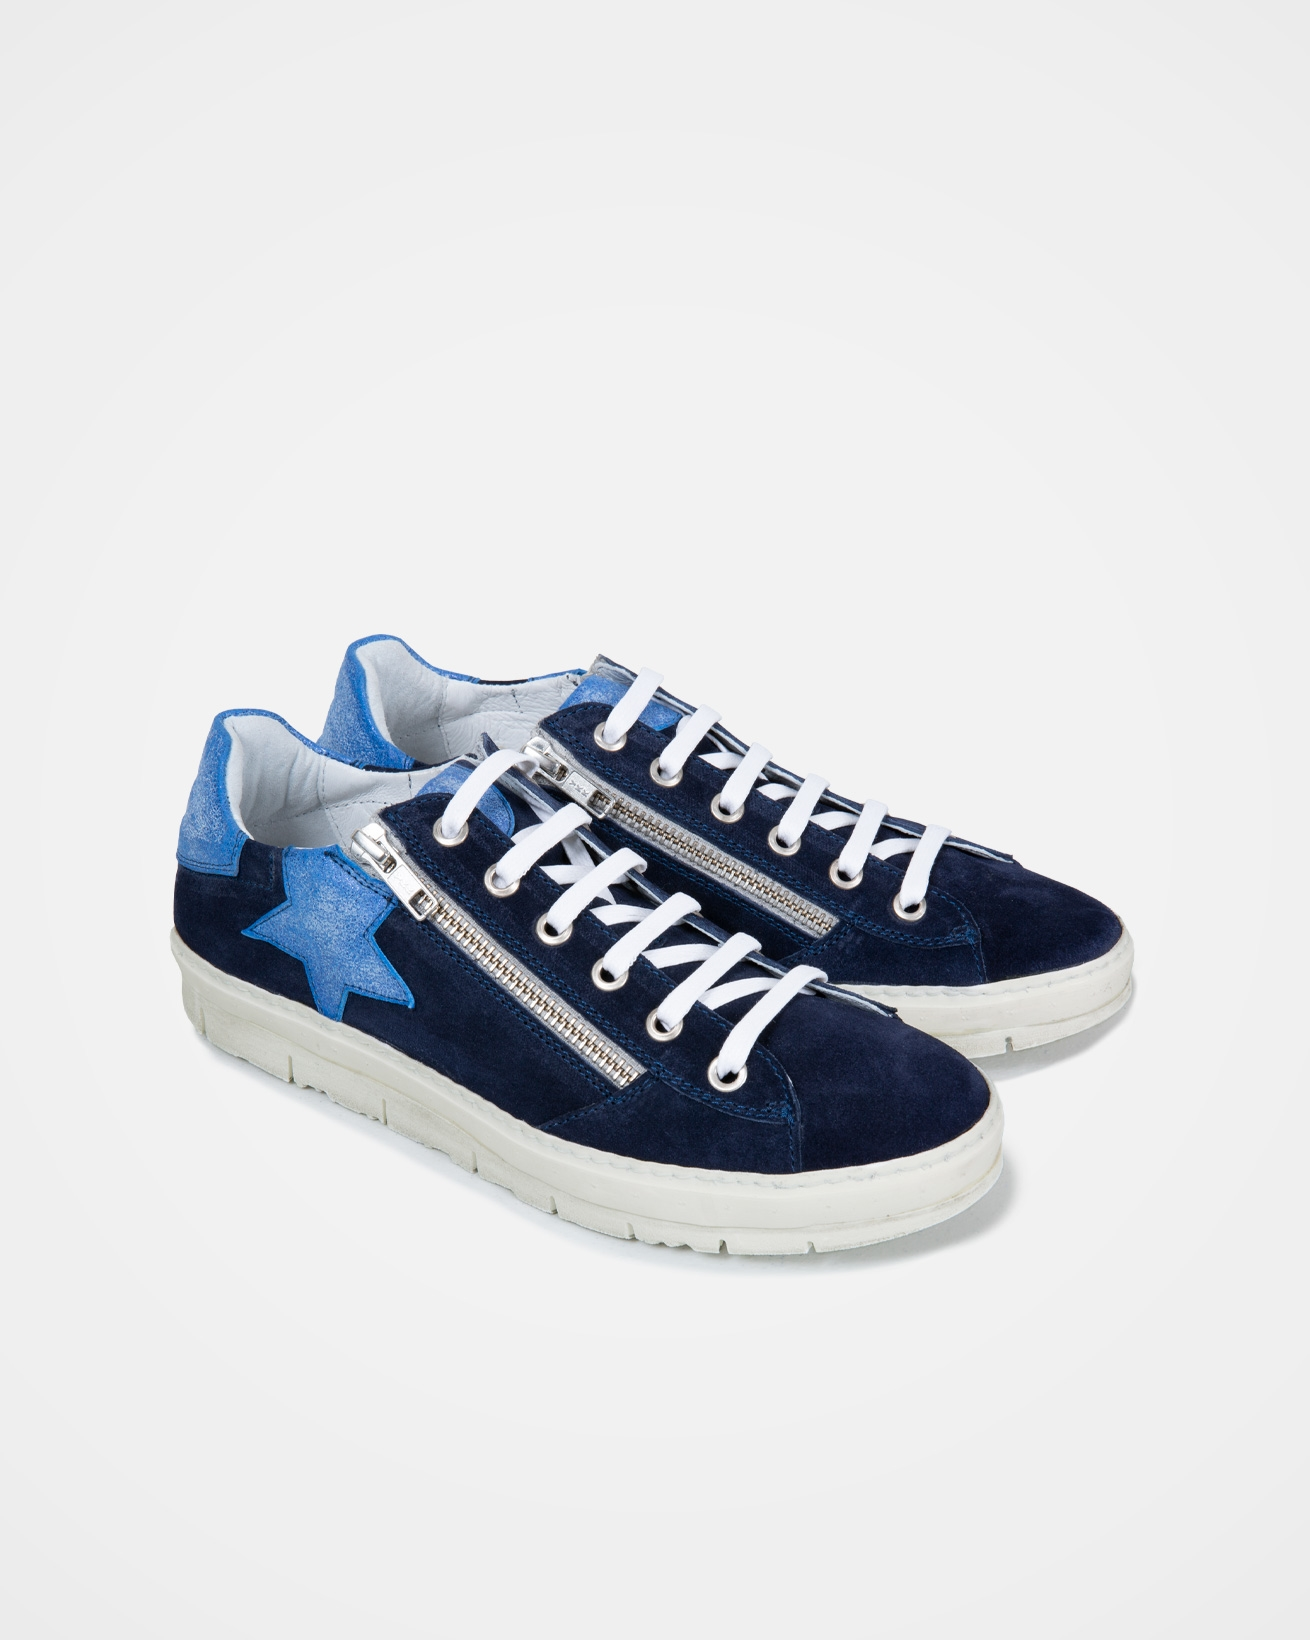 7587_embellished_trainers_navy_star_pair.jpg